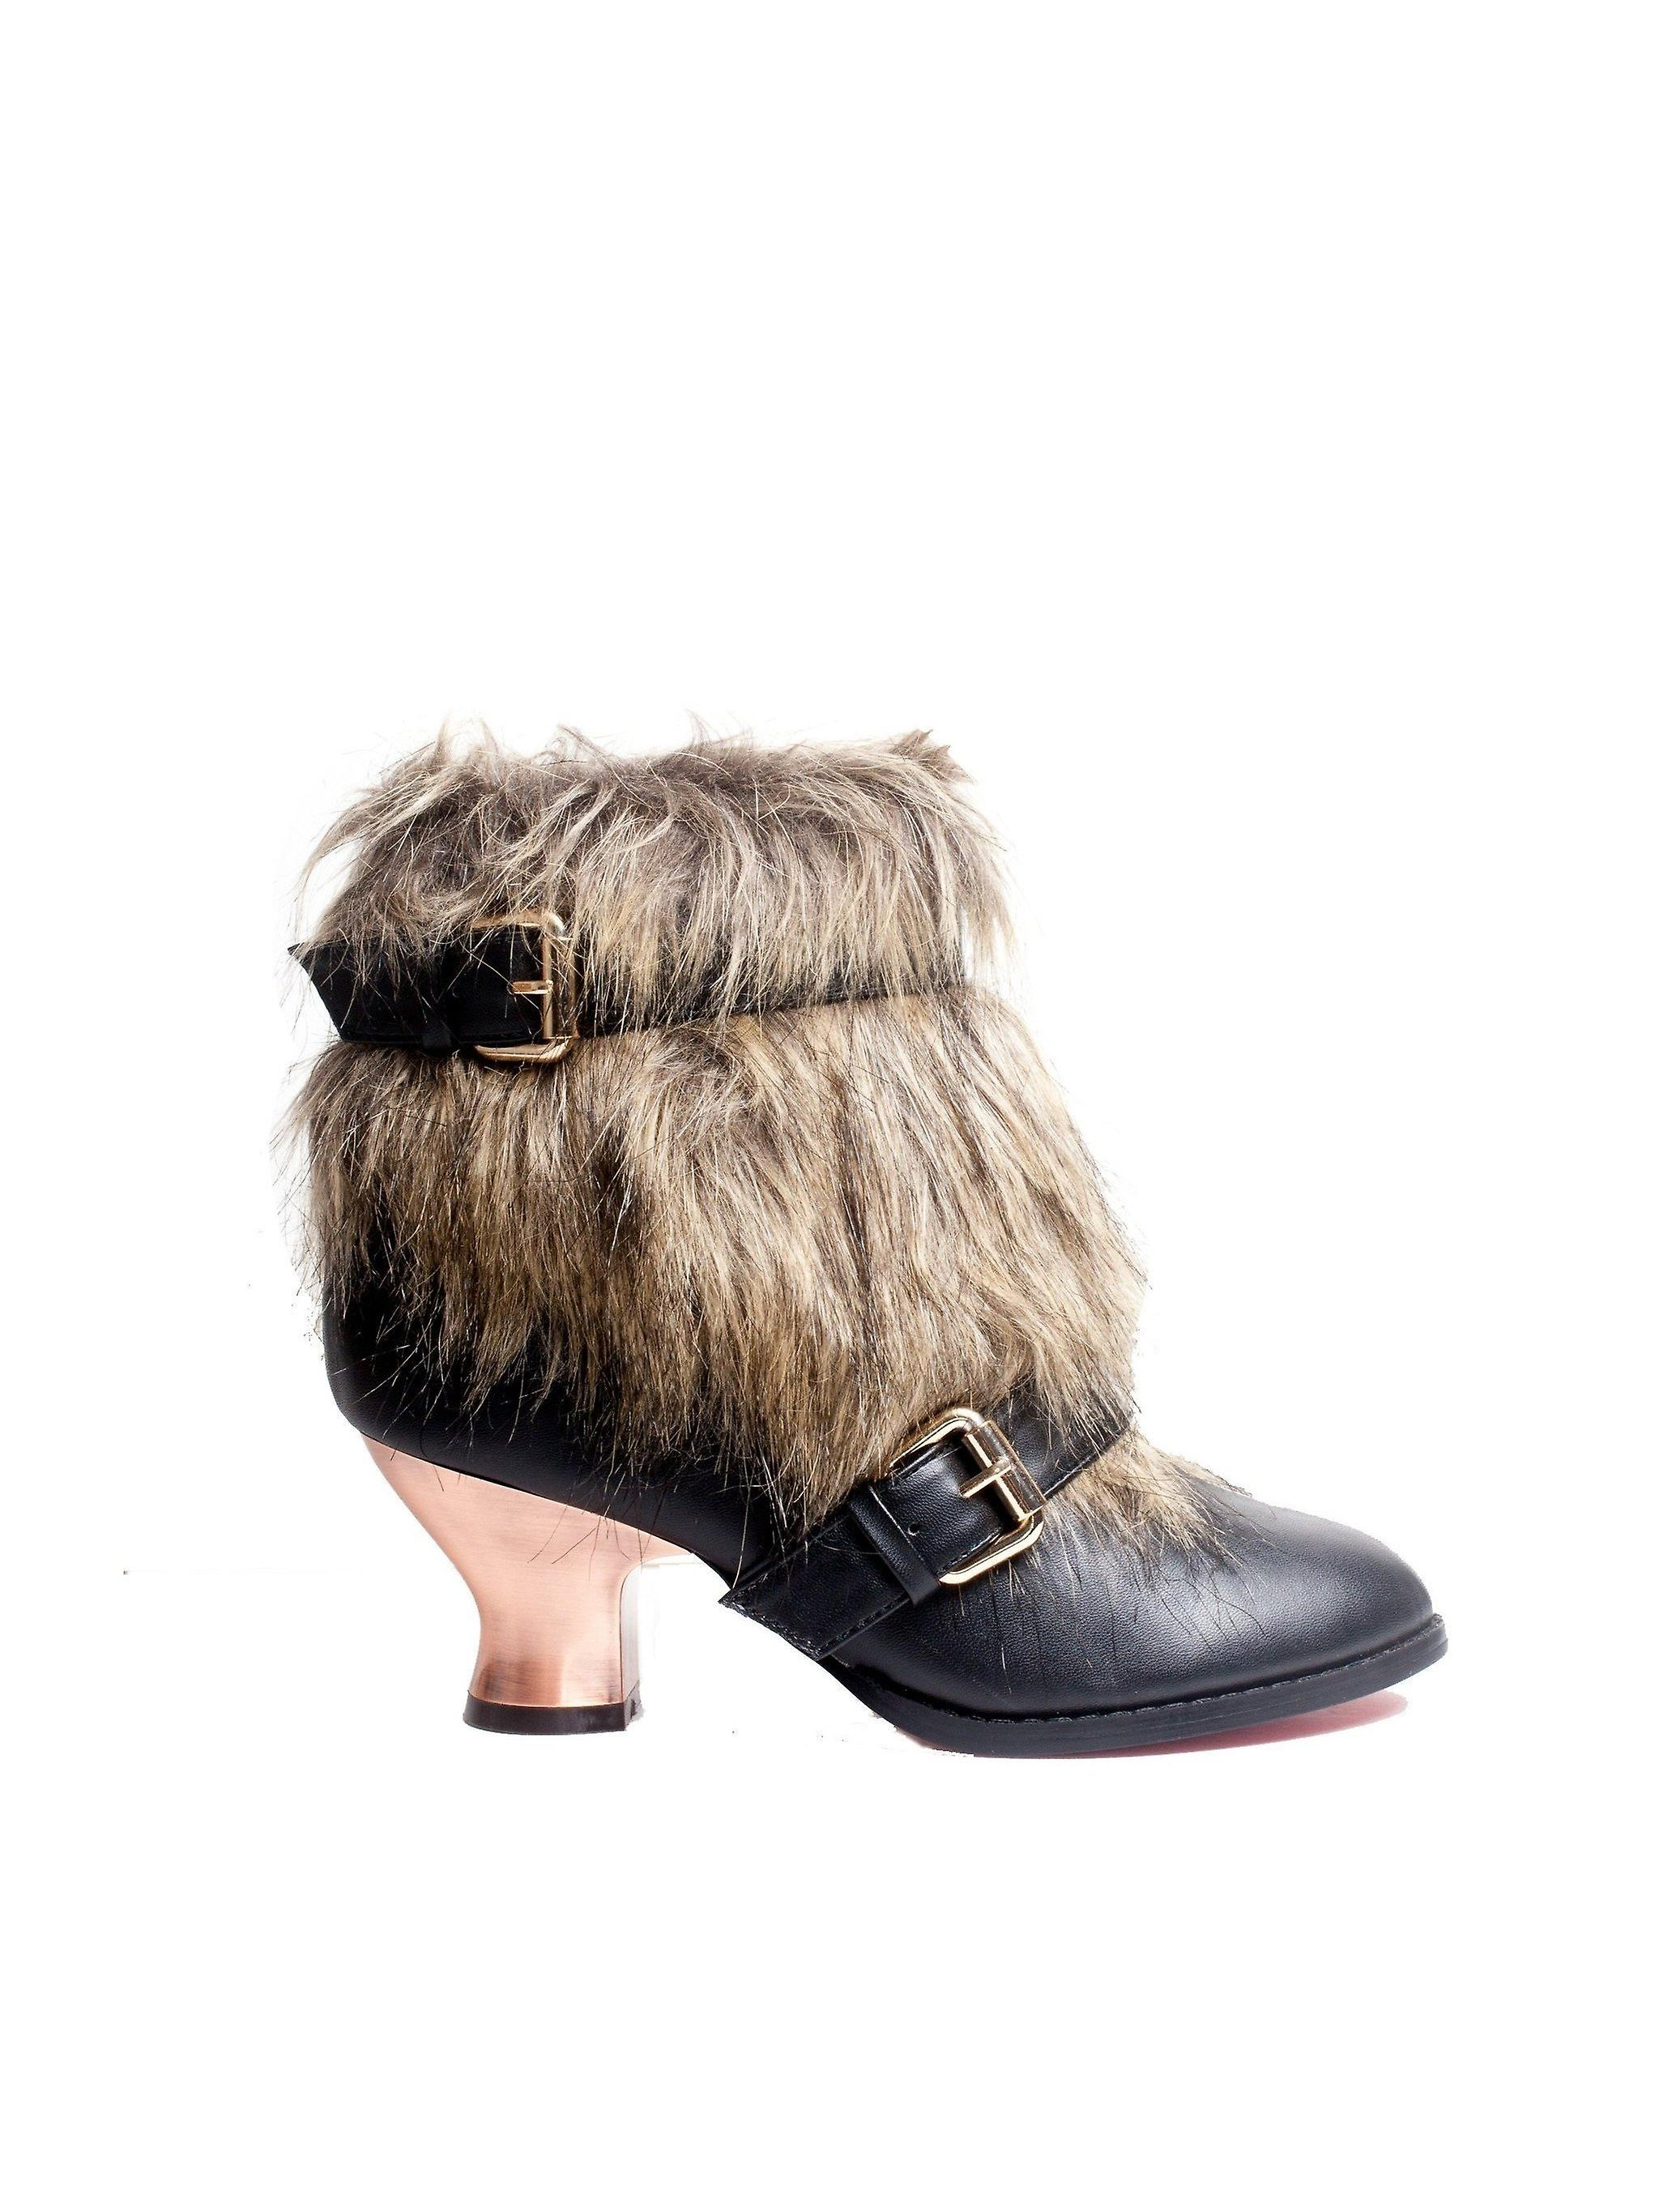 Hades Shoes H-ELEN Animal friendly fur and synthetic leather low boot shoes